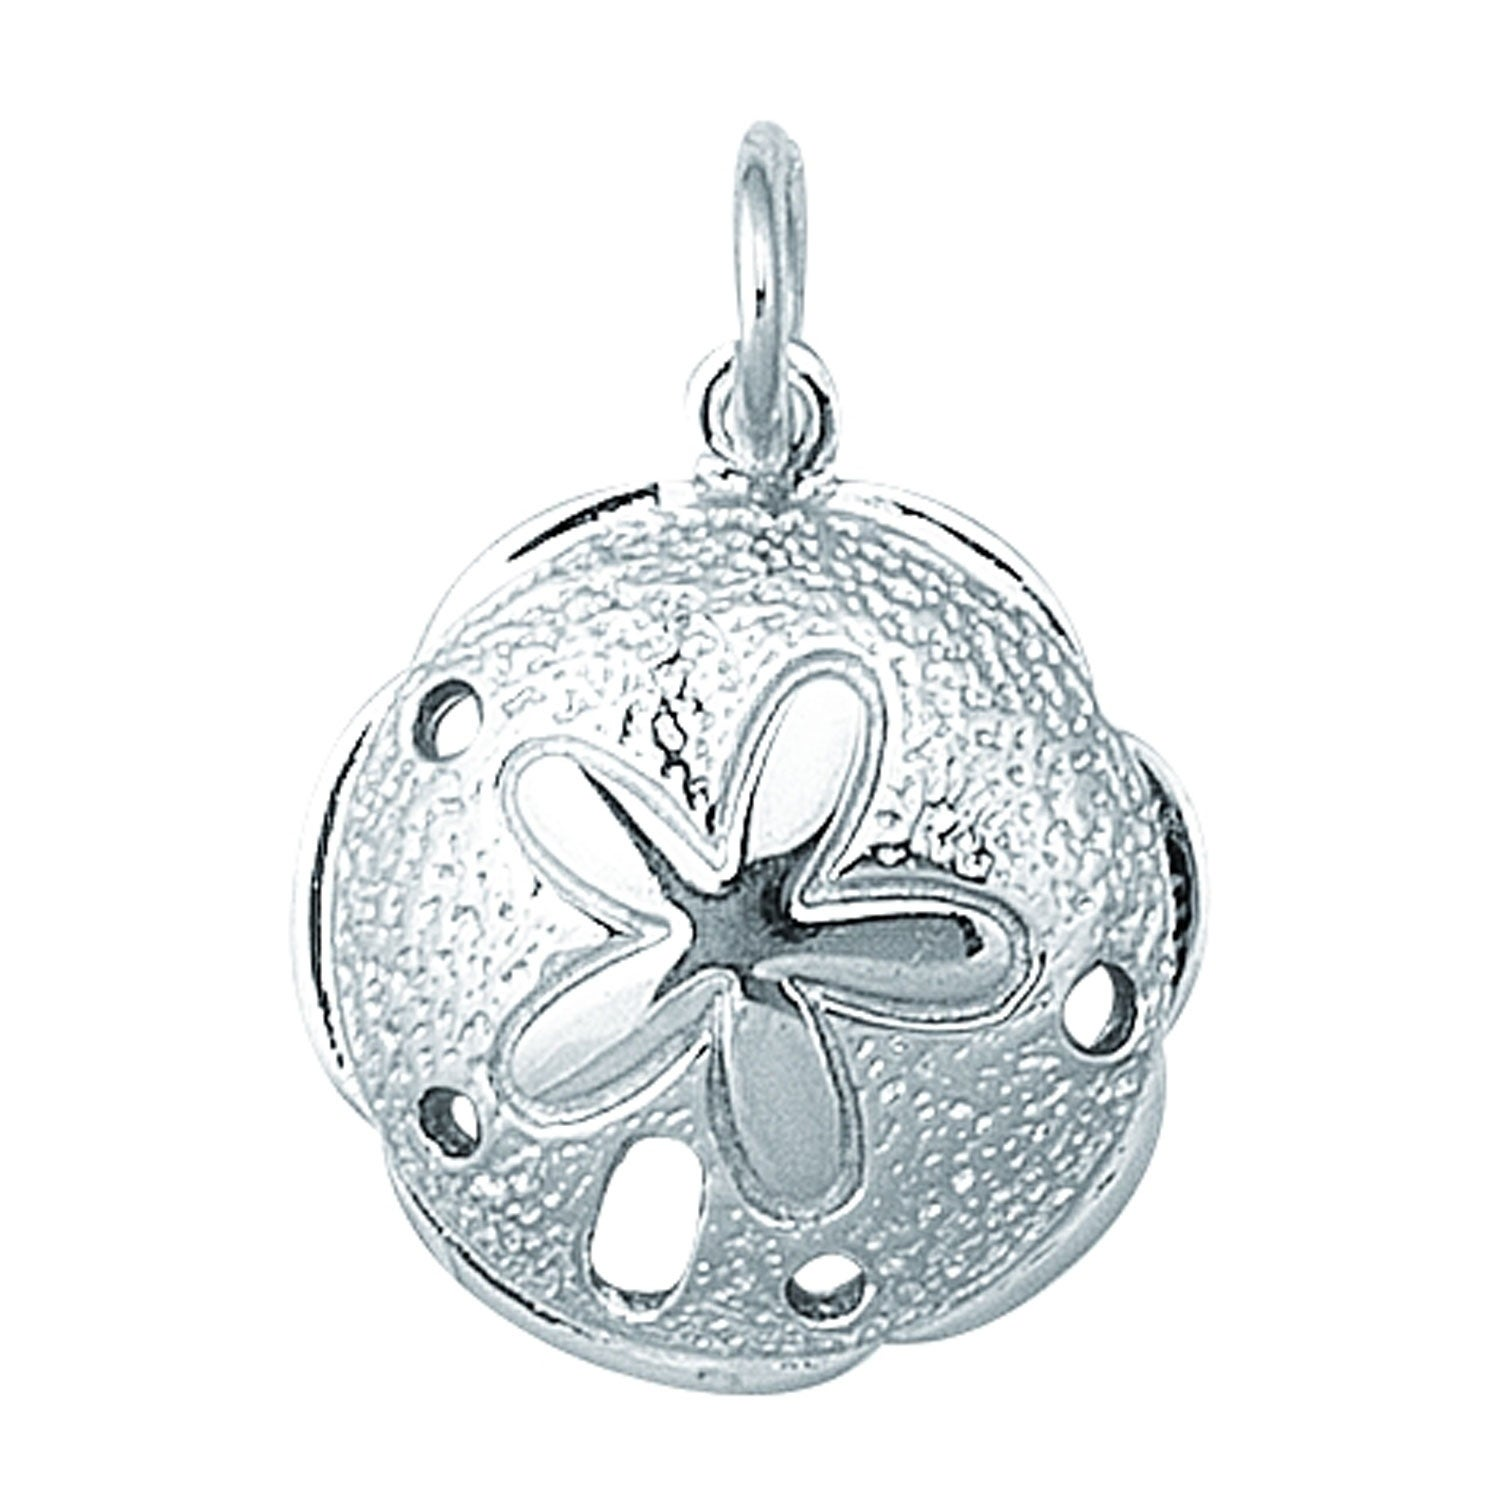 Sterling Silver Charms Sea Nautical Clip on Charm For European Bracelet